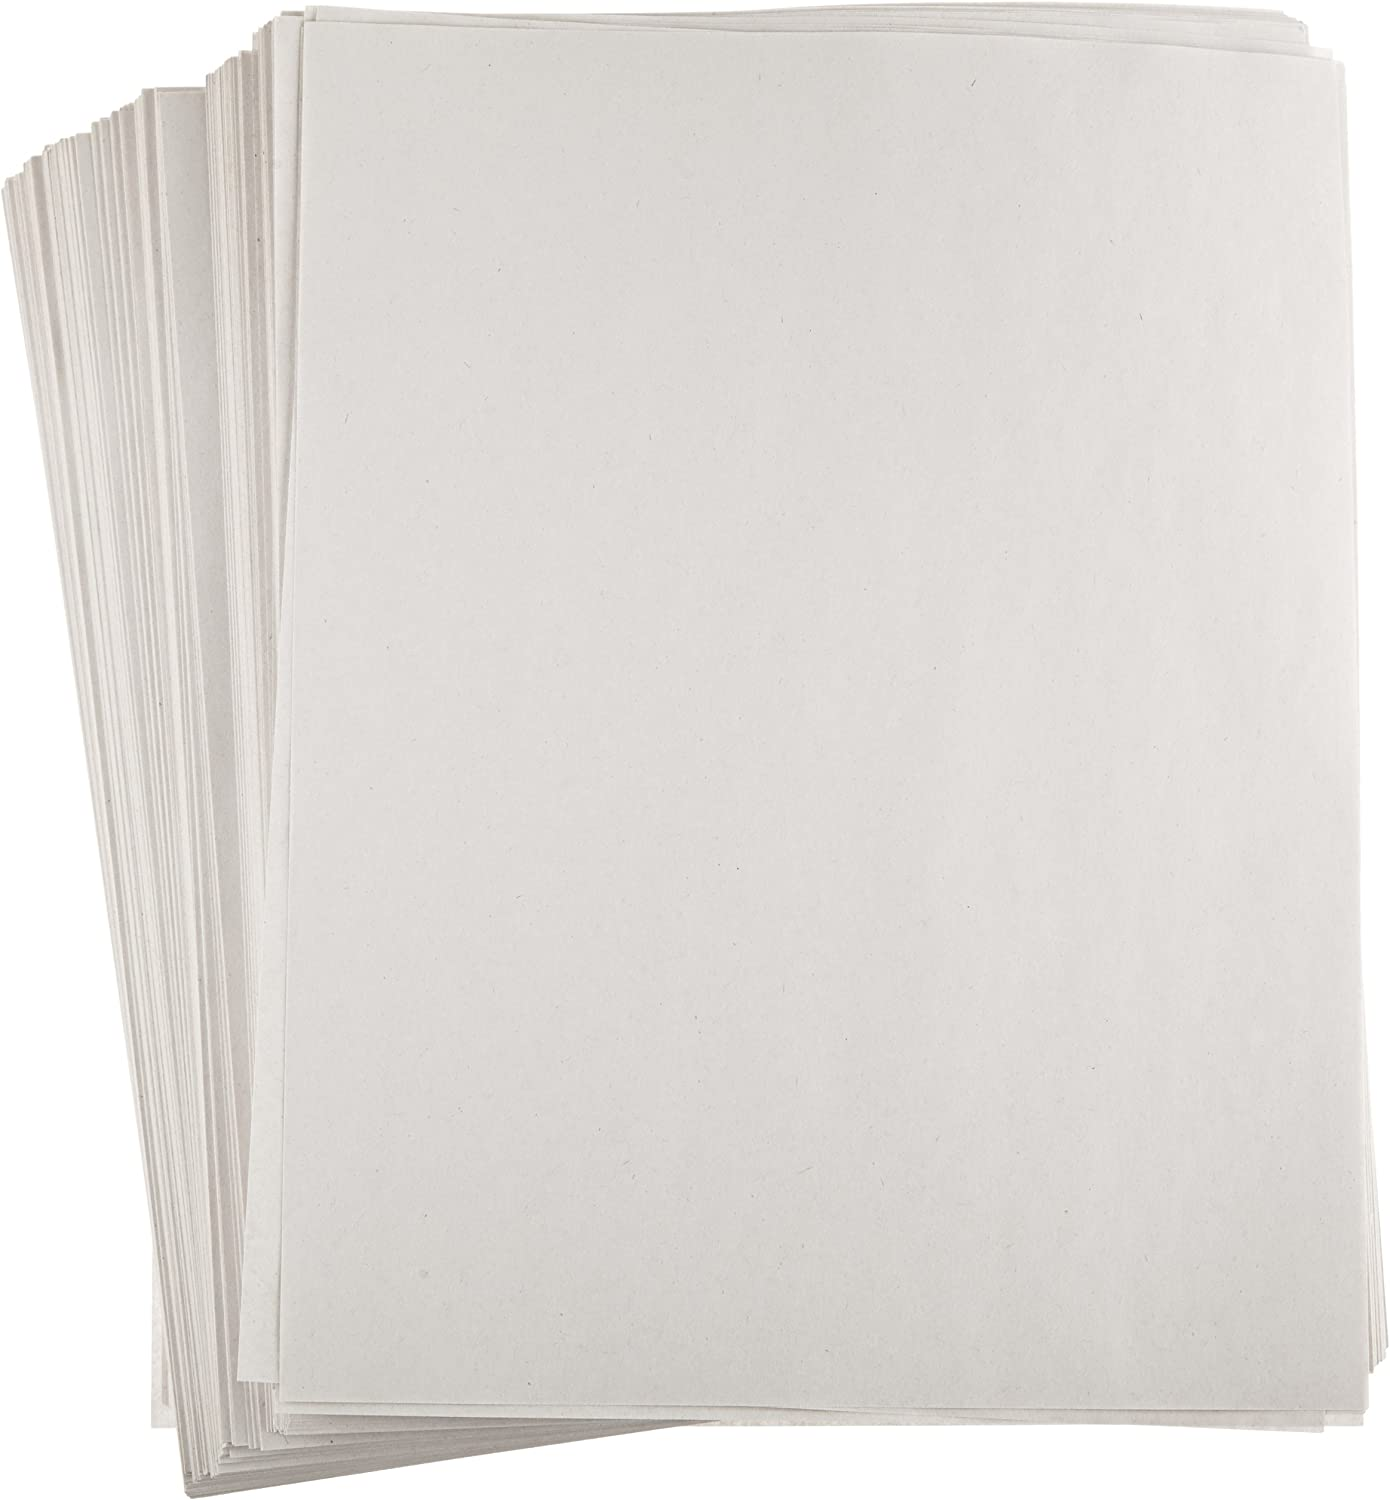 School Smart Value Drawing Paper Pack of 500 50 lb 9 x 12 Inches Soft White